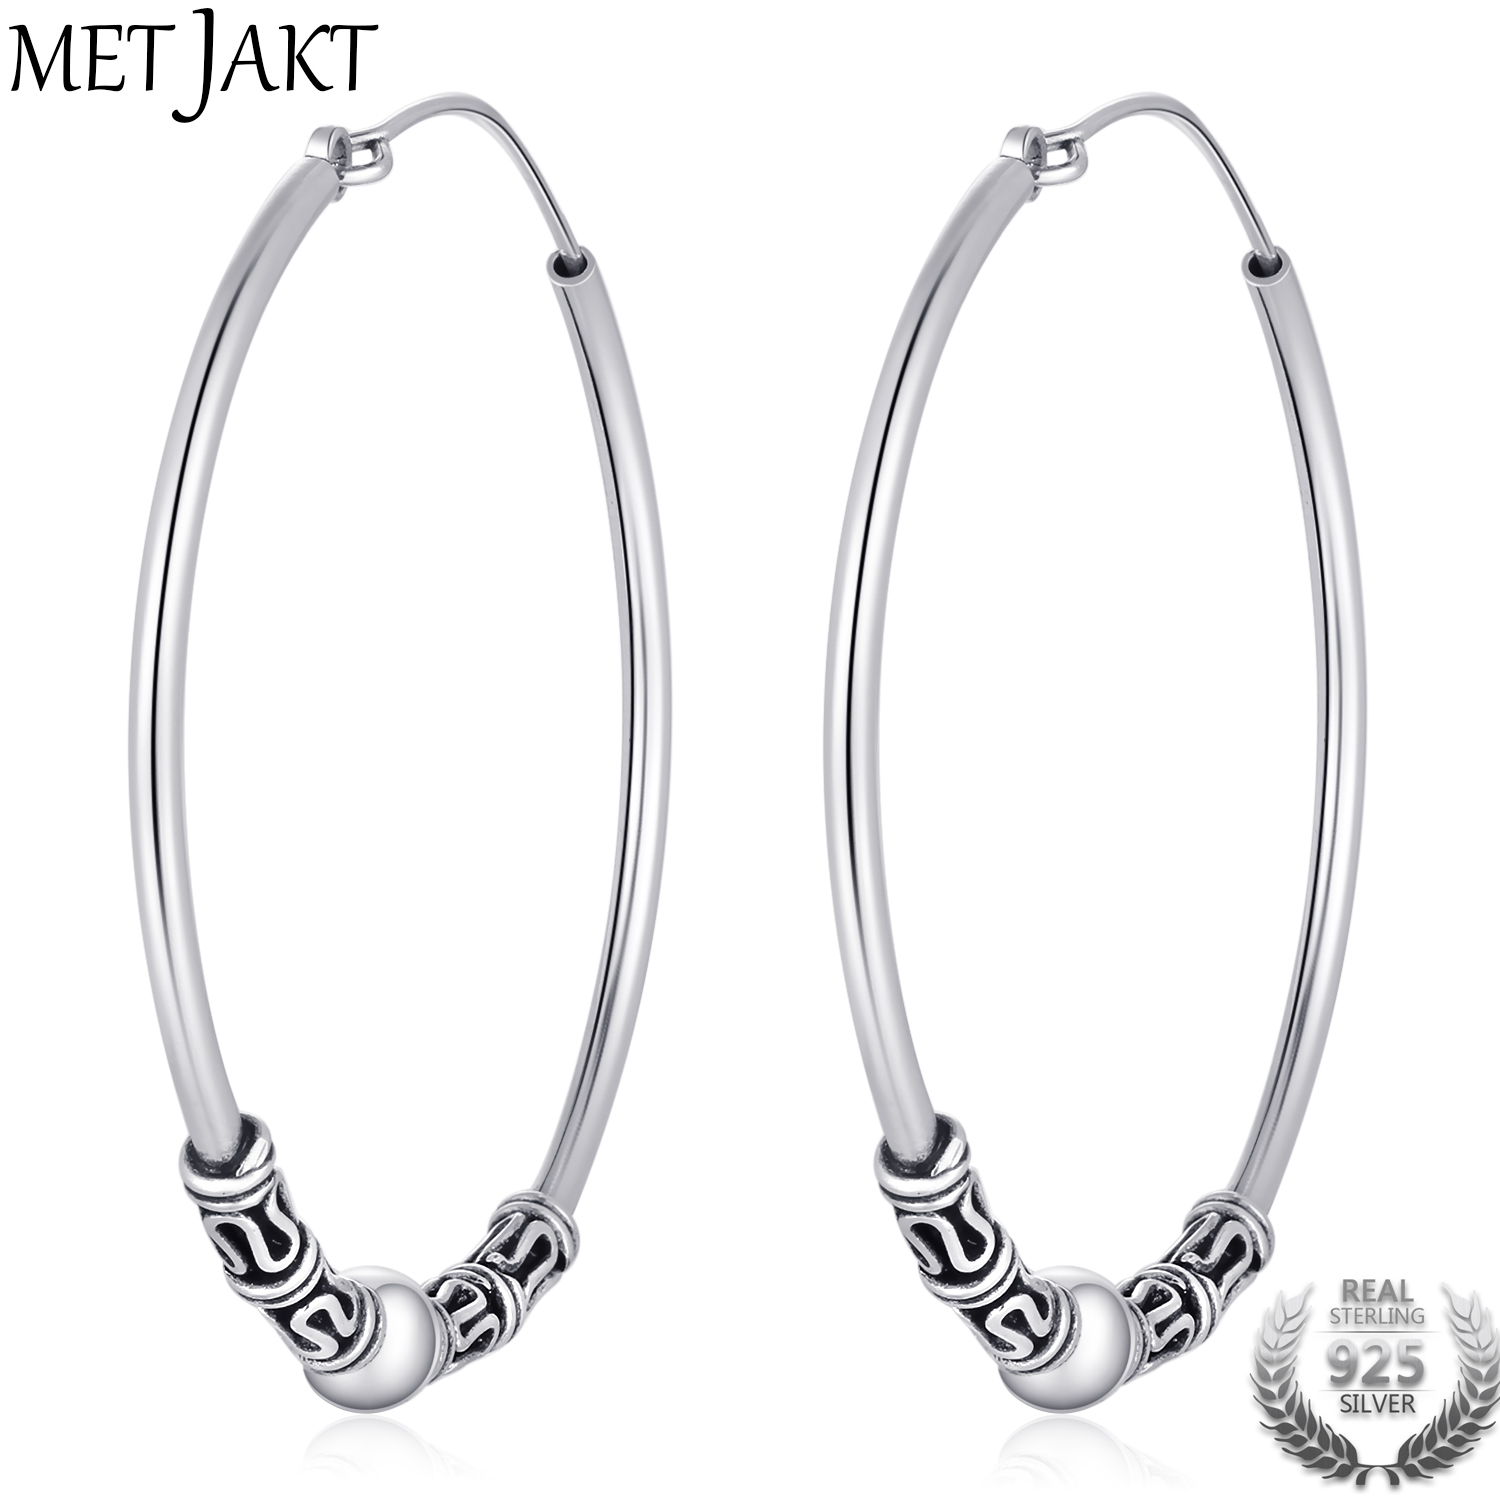 MetJakt Classic Round 925 Sterling Silver Silver Hoop Earrings for Women's Retro Ethnic Style Vintage Jewelry silver vintage flower pattern plain round hoop earrings